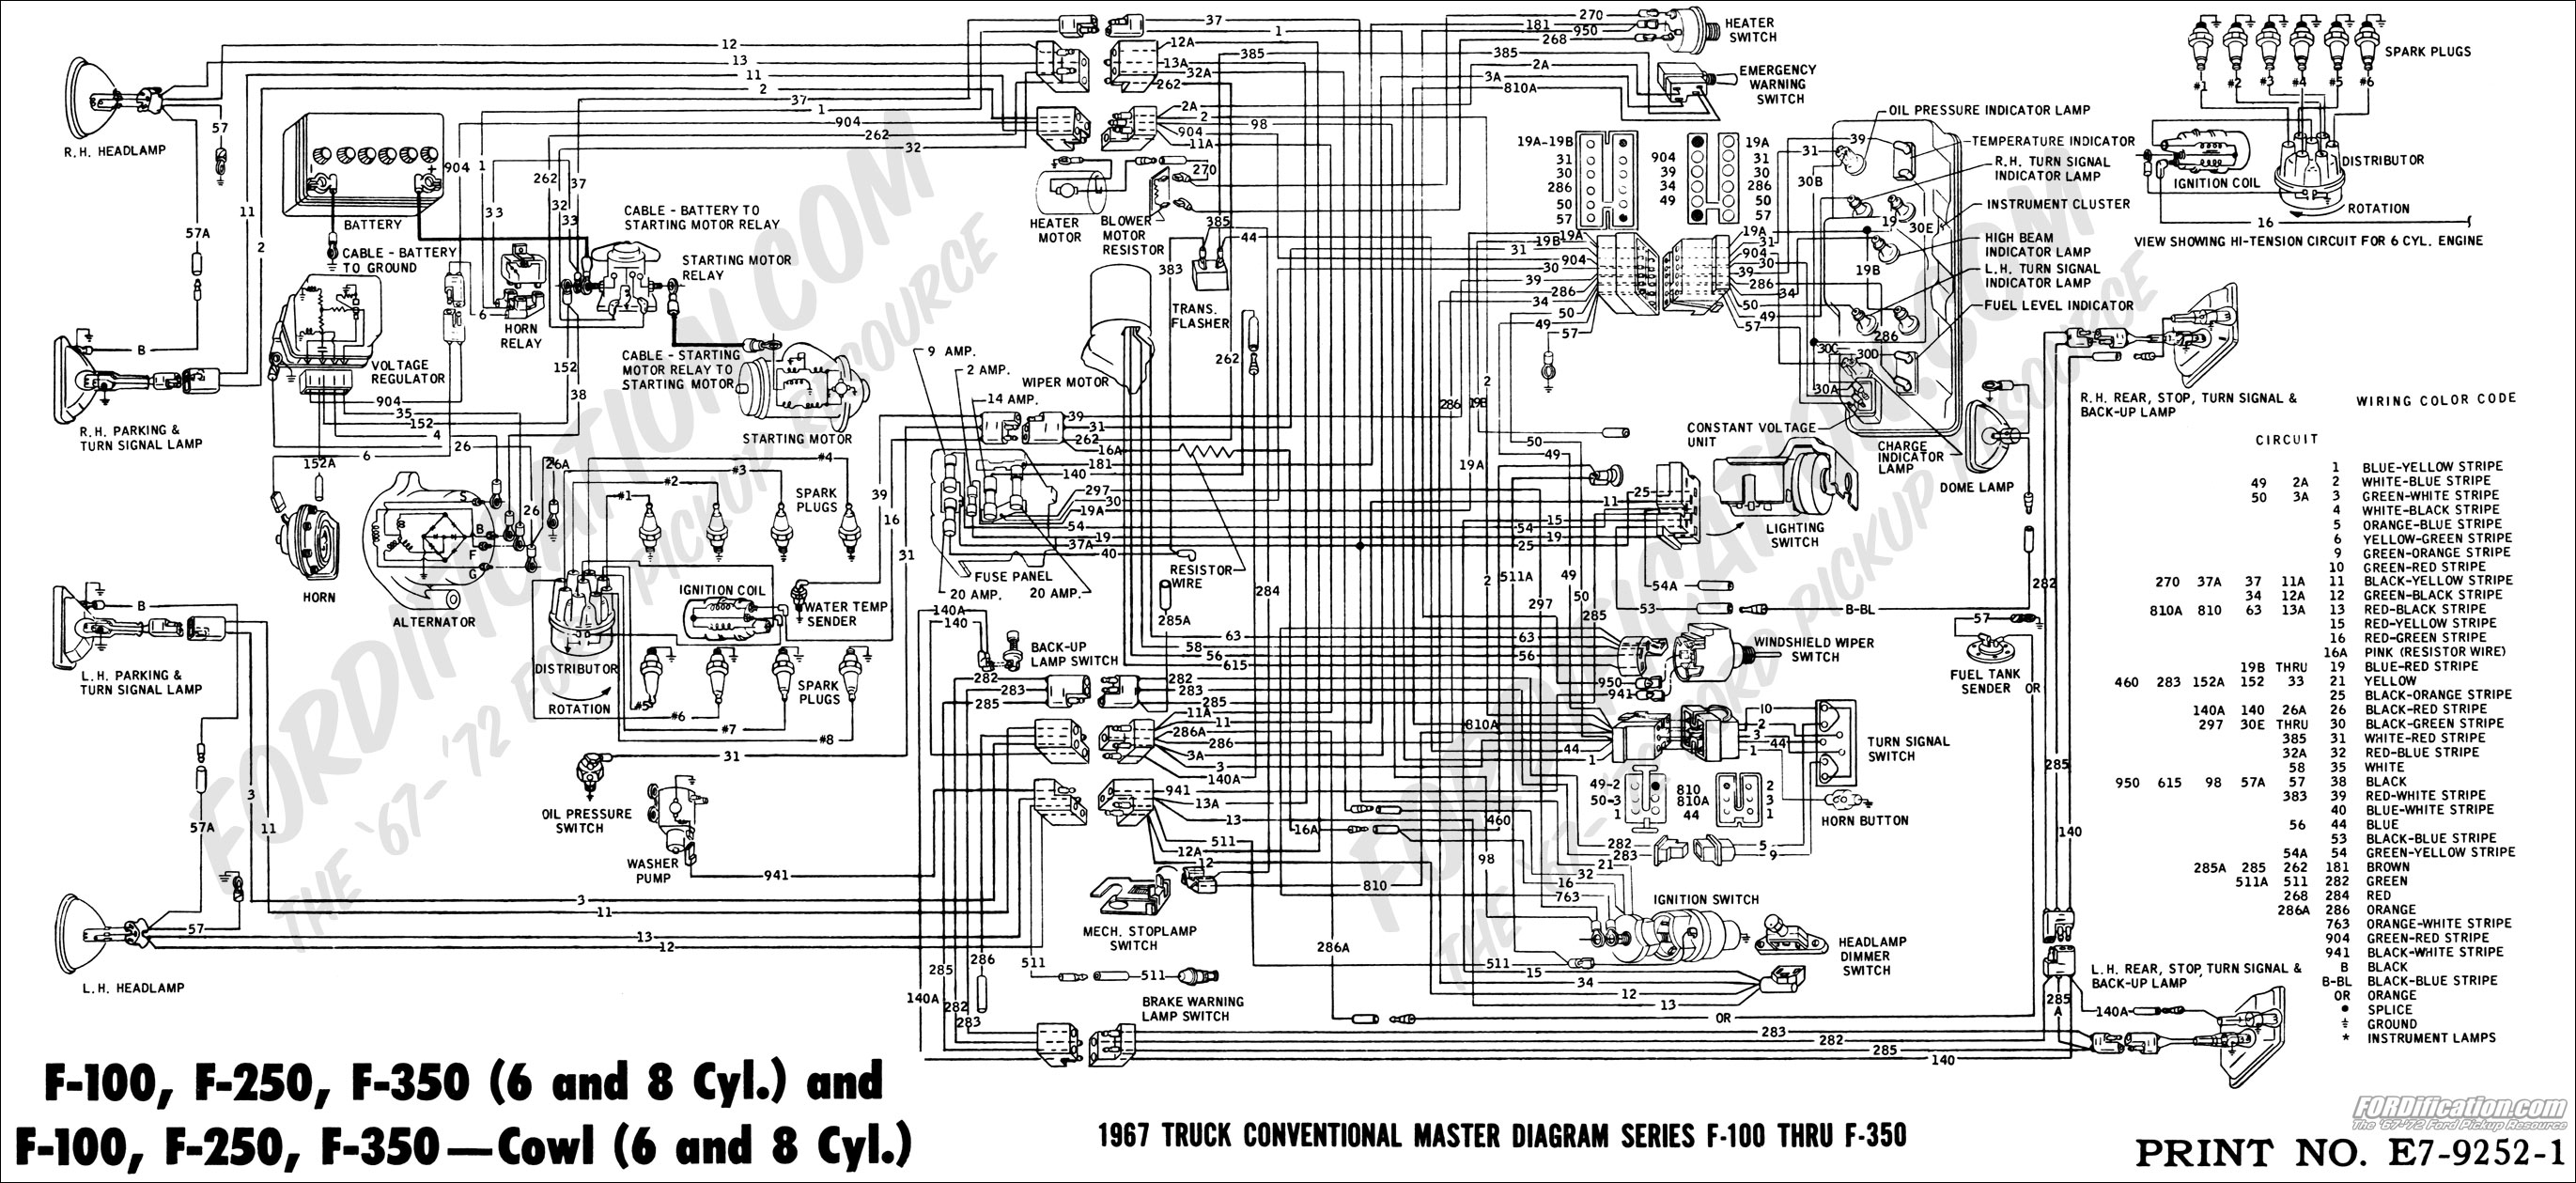 ford 302 engine wiring wiring diagram f the wiring diagram ford rh roujgiu tripa co Ford 5.8 Engine Diagram Ford 302 Engine Exploded View